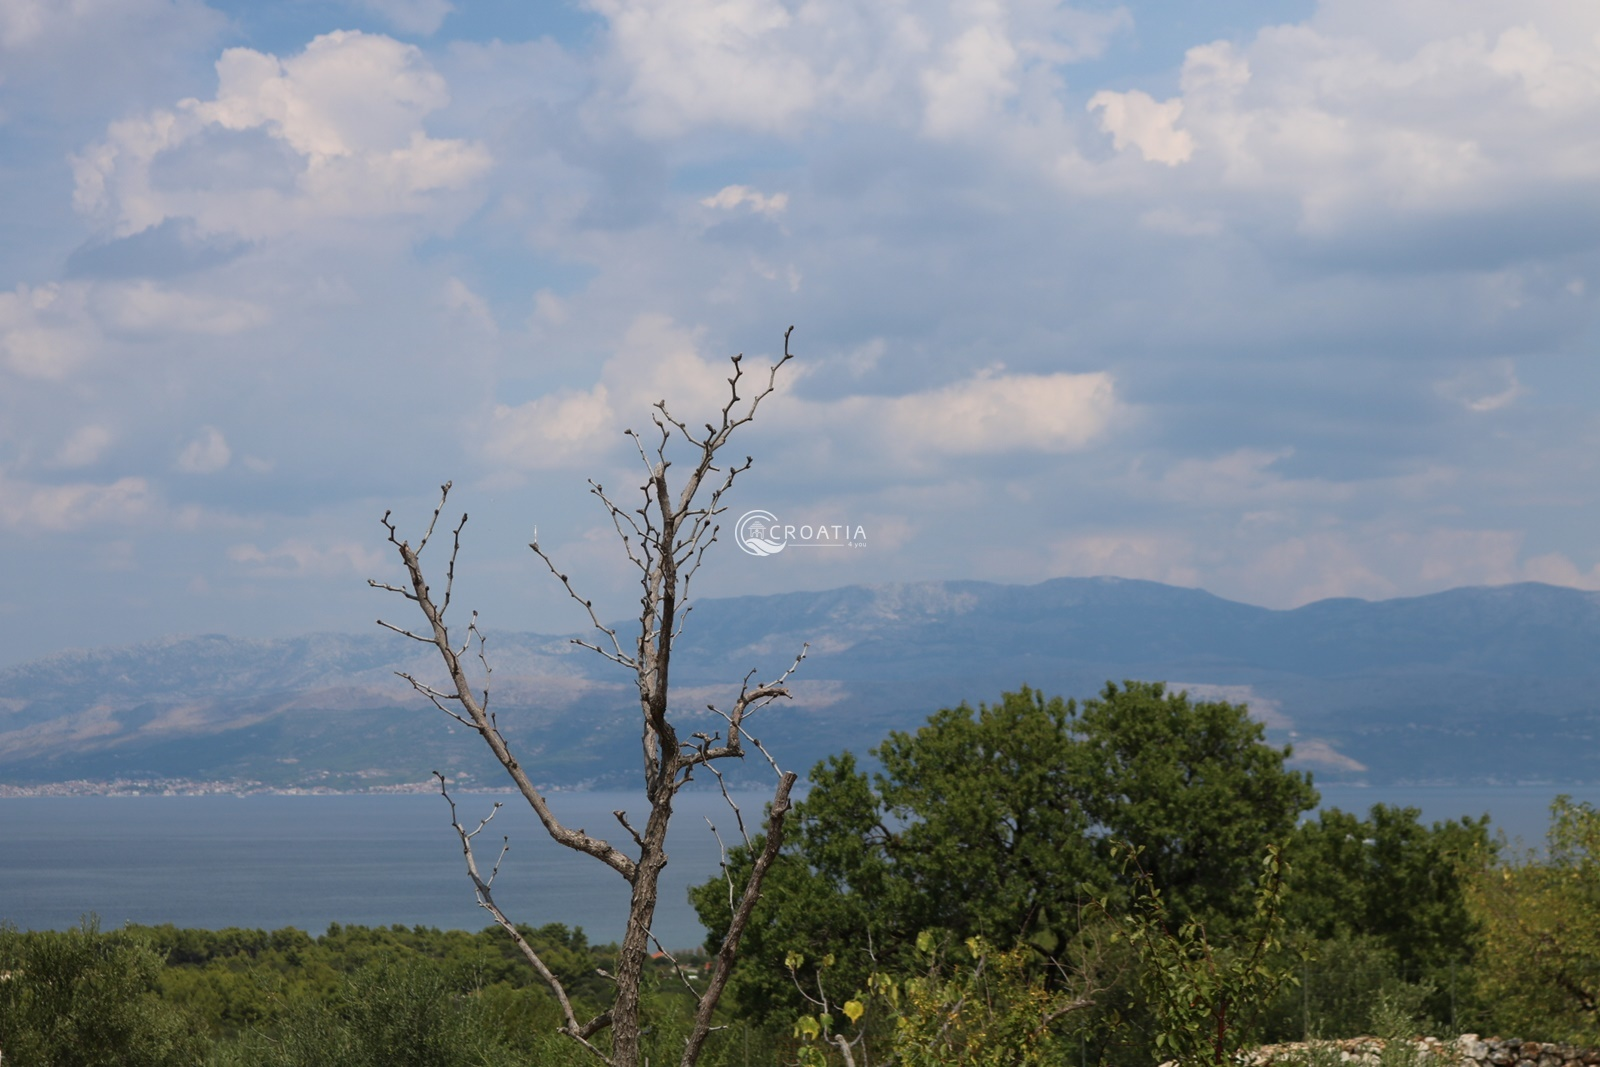 Land for sale in Mirca on island of Brac